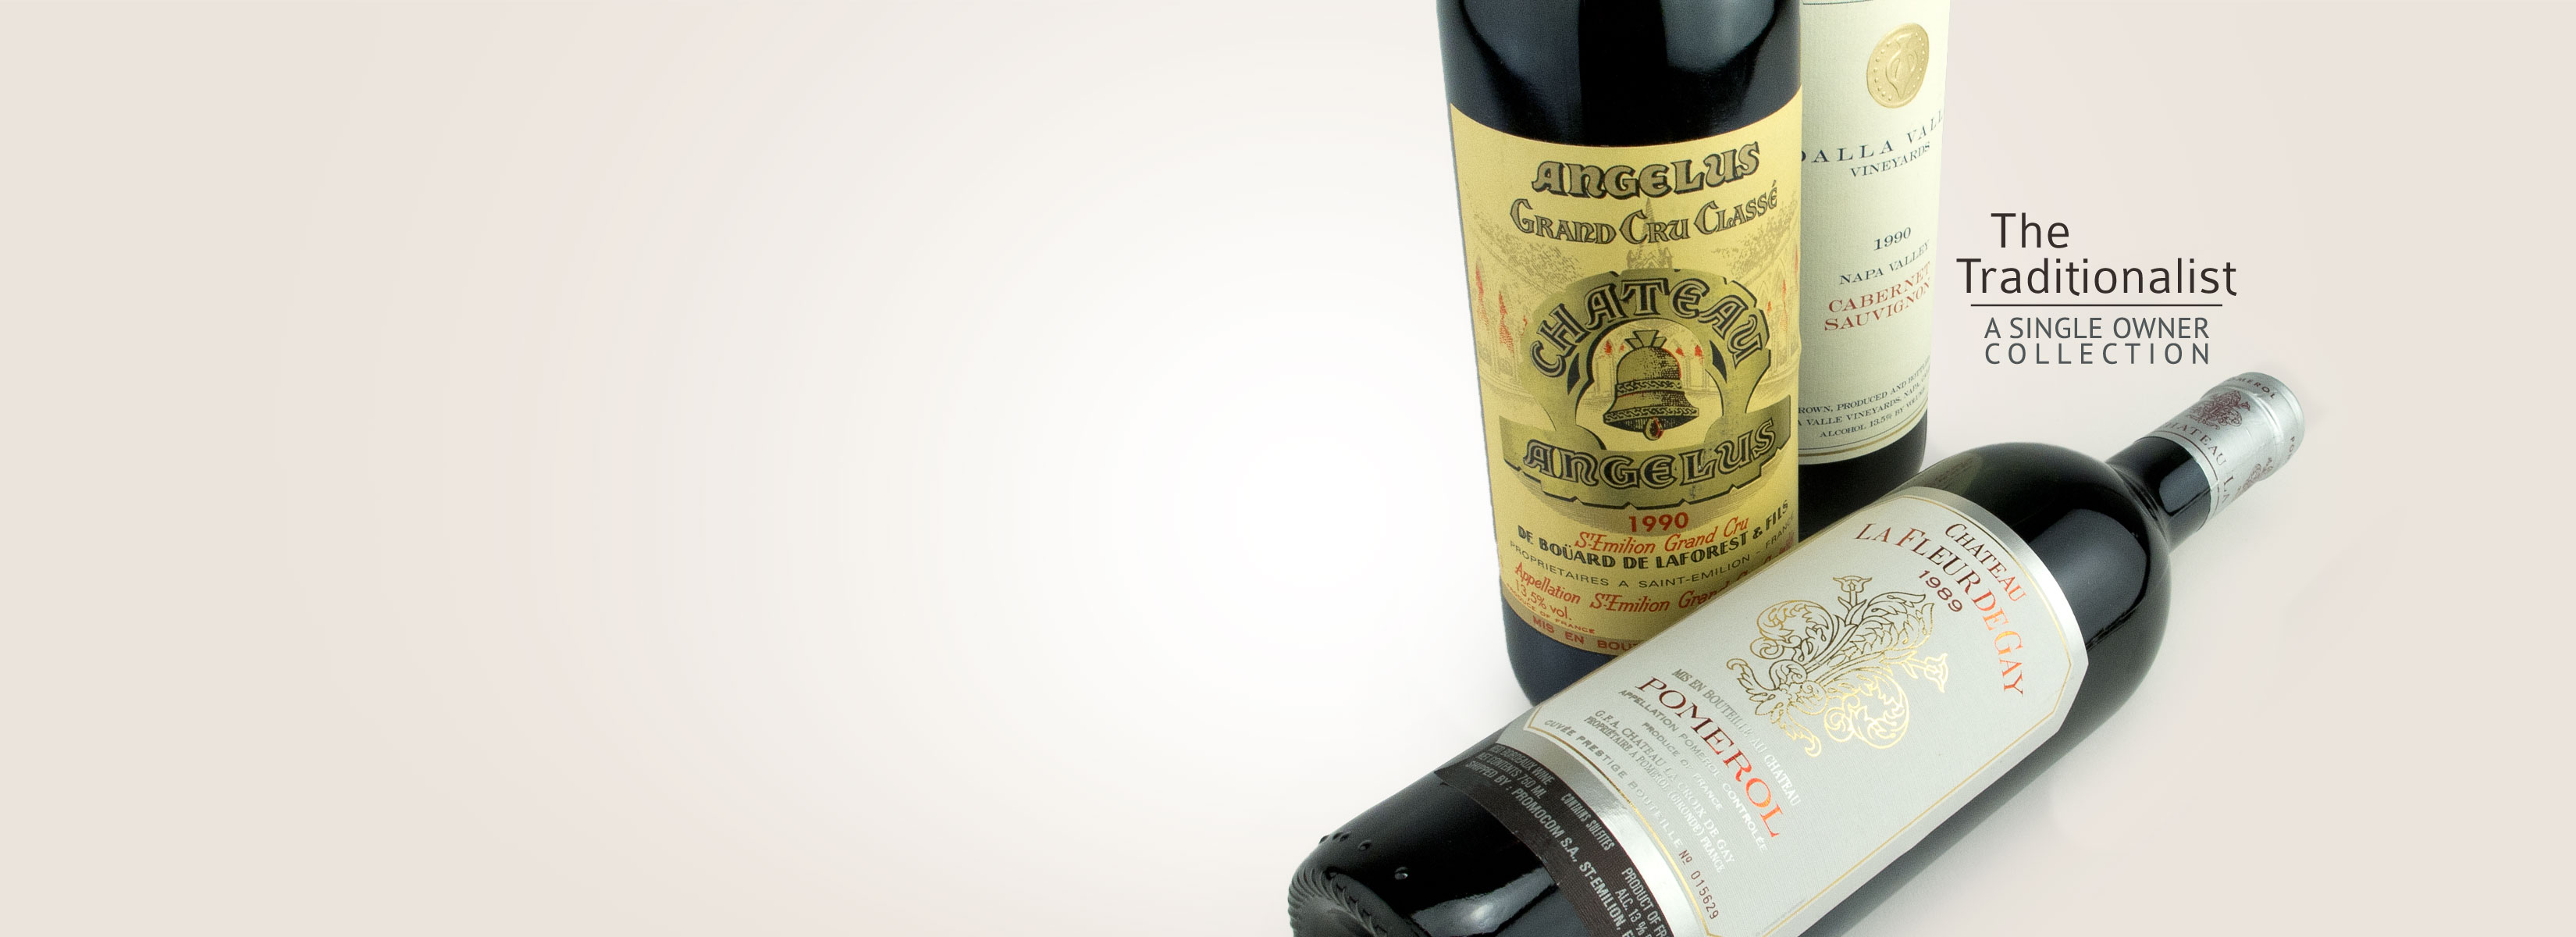 1982 Lafite, 1986 Leoville Las Cases and Stags Leap Cask 23